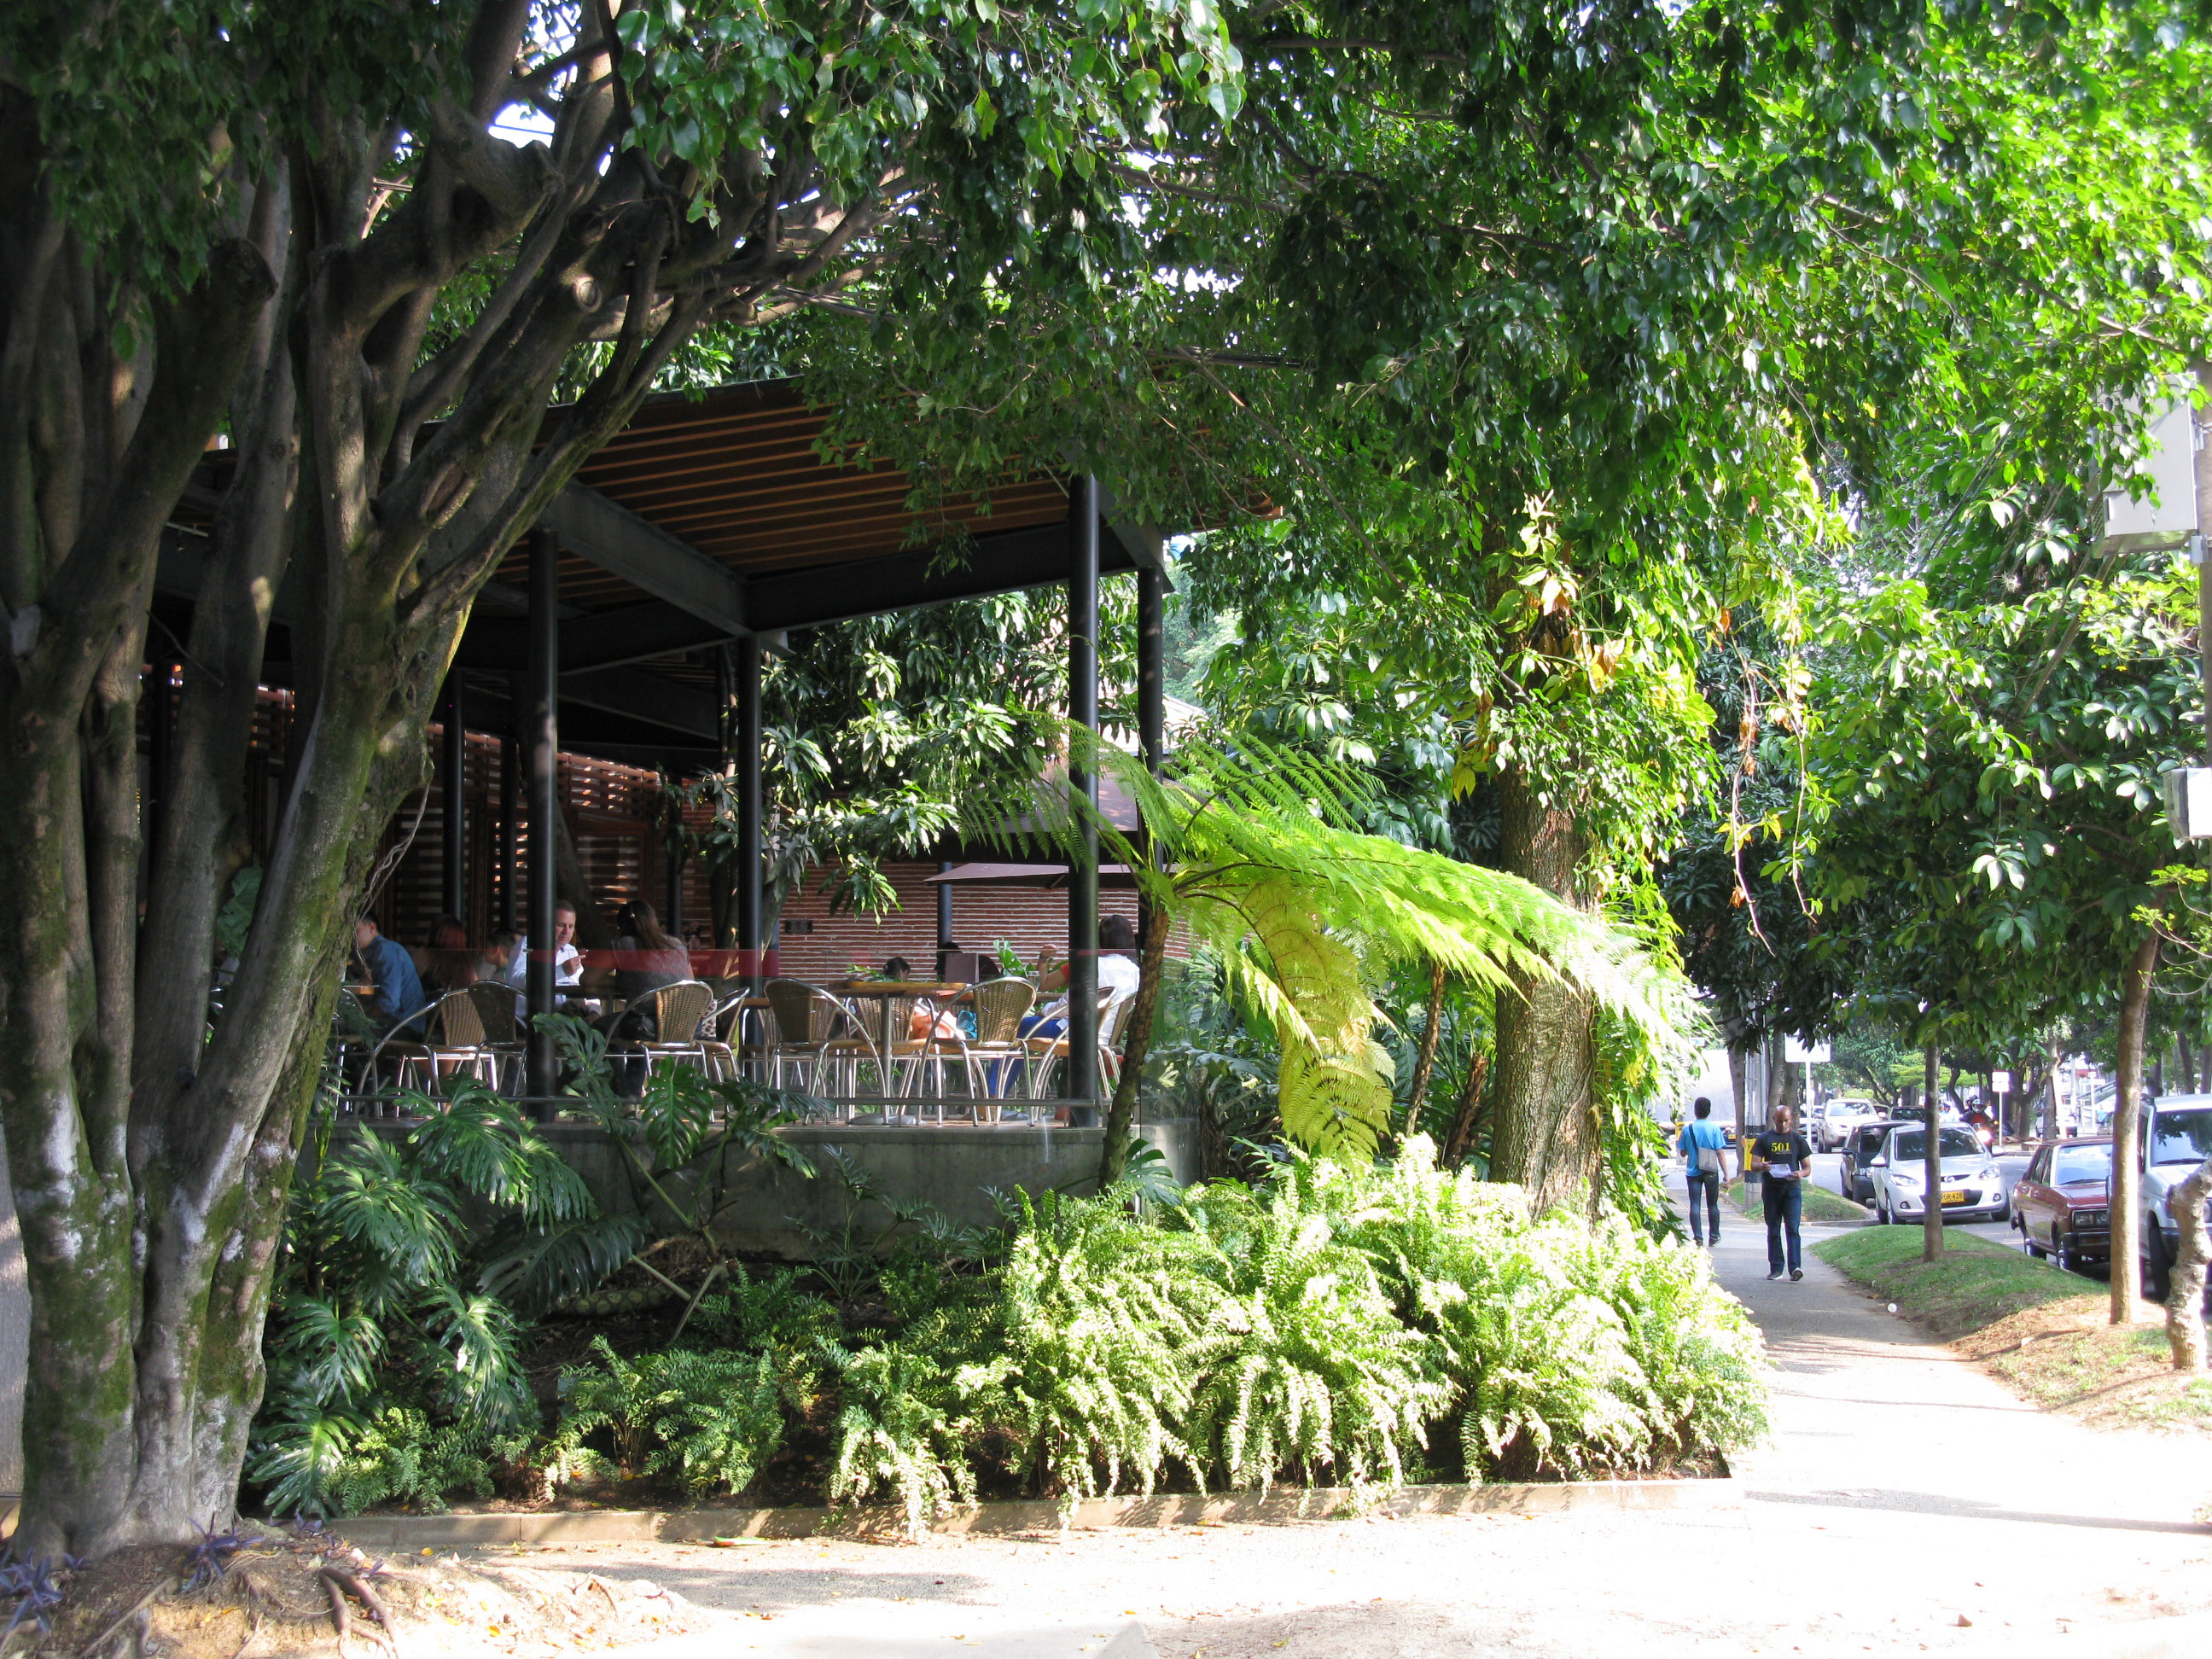 Hidden cafes like this one draw people to Medellín all year